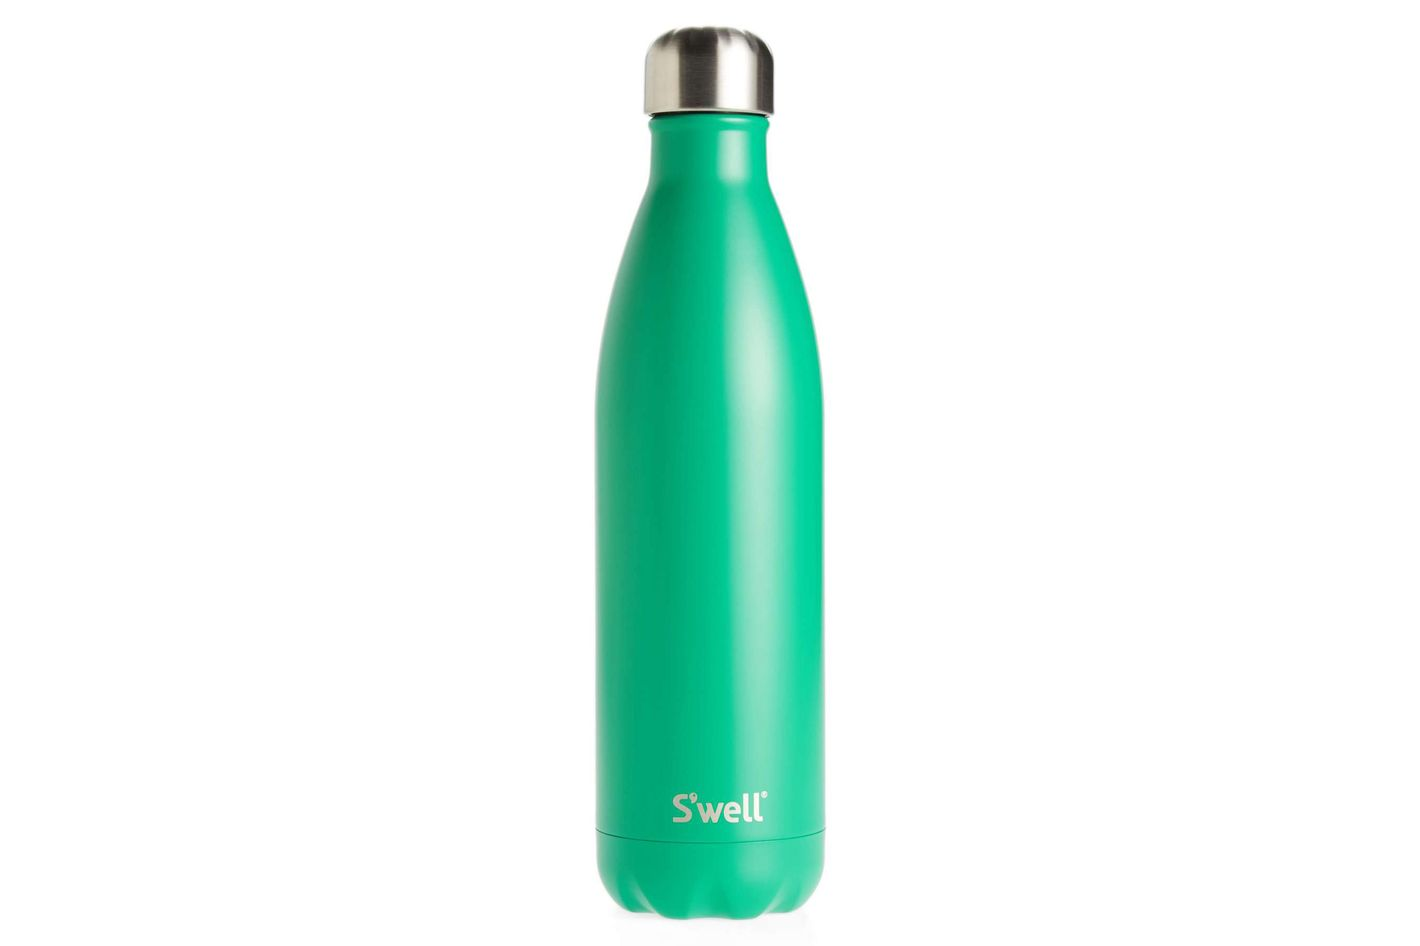 S'well Eucalyptus Insulate Stainless Steel Water Bottle